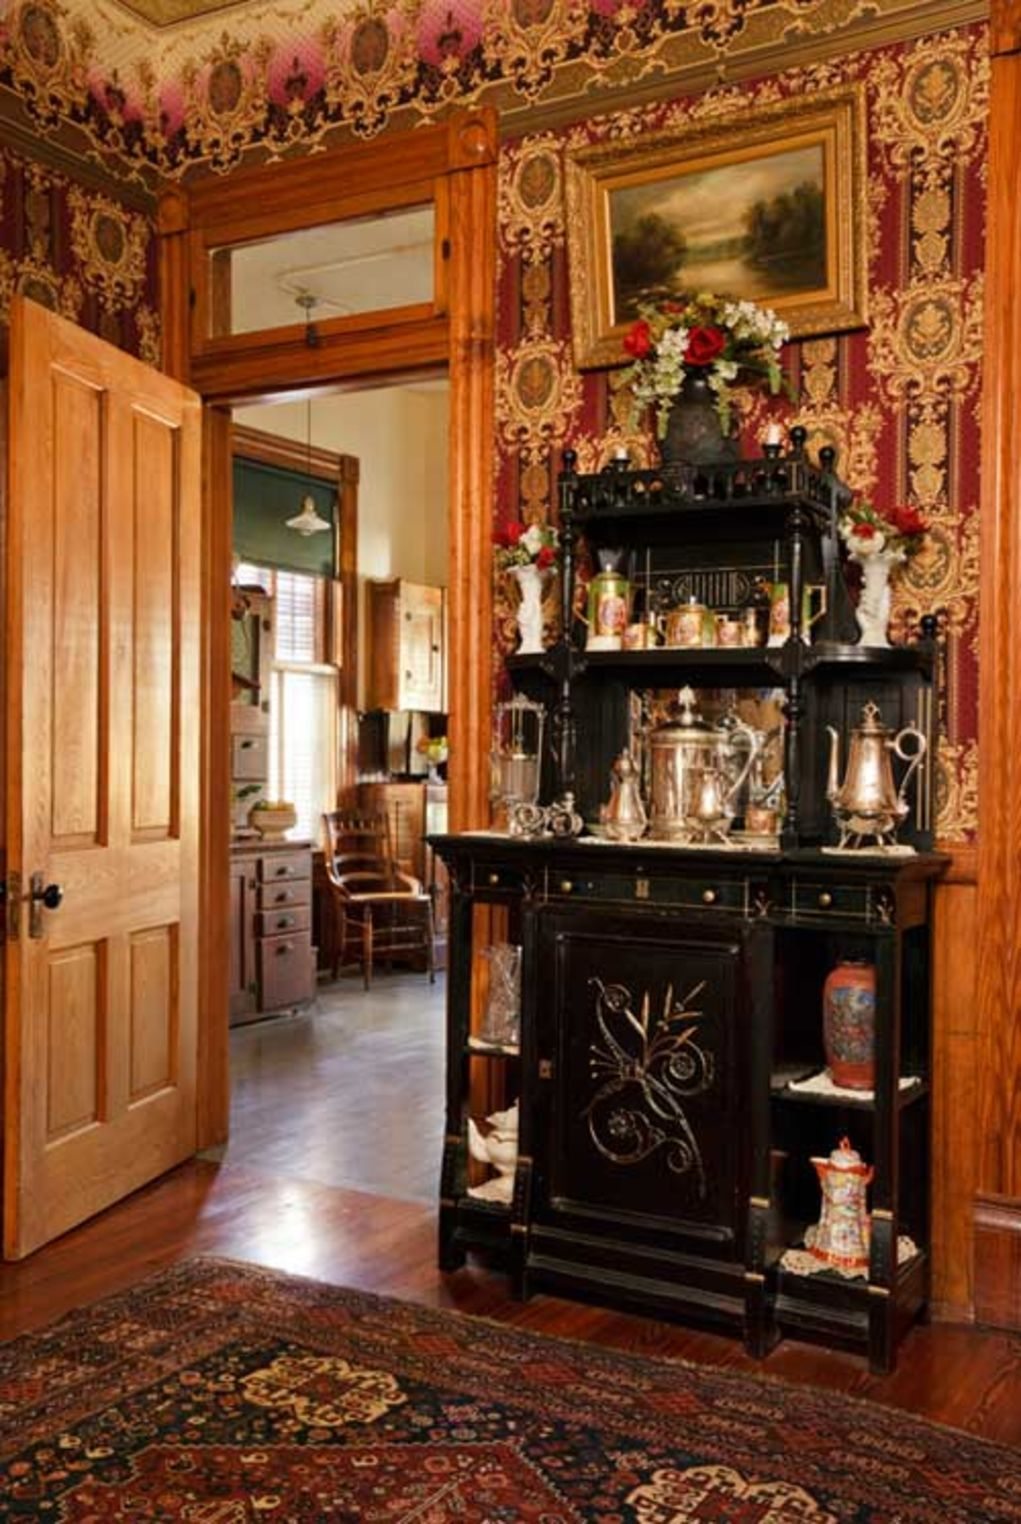 An Authentic Victorian Kitchen Design | Old House ...